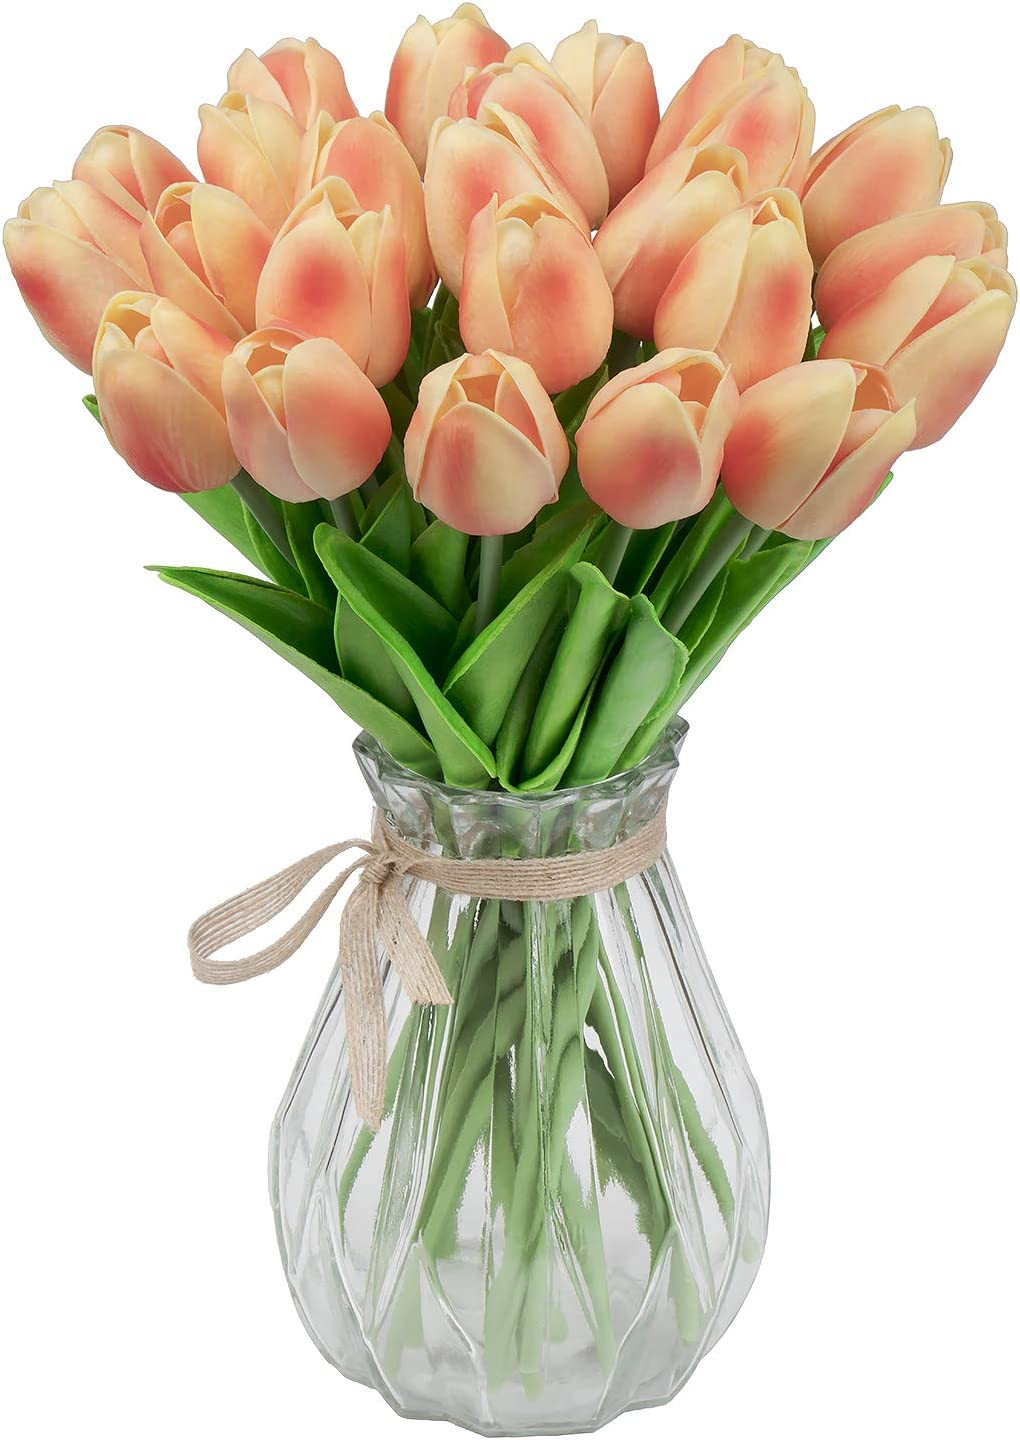 """GPARK 30Pcs Artificial Tulip Fake Flowers Plants 13.3"""" for Wedding Party Home Garden Kitchen Office Party Decor Outdoor Greenery Wedding Wall Decoration (Champagne) (No Vase)"""